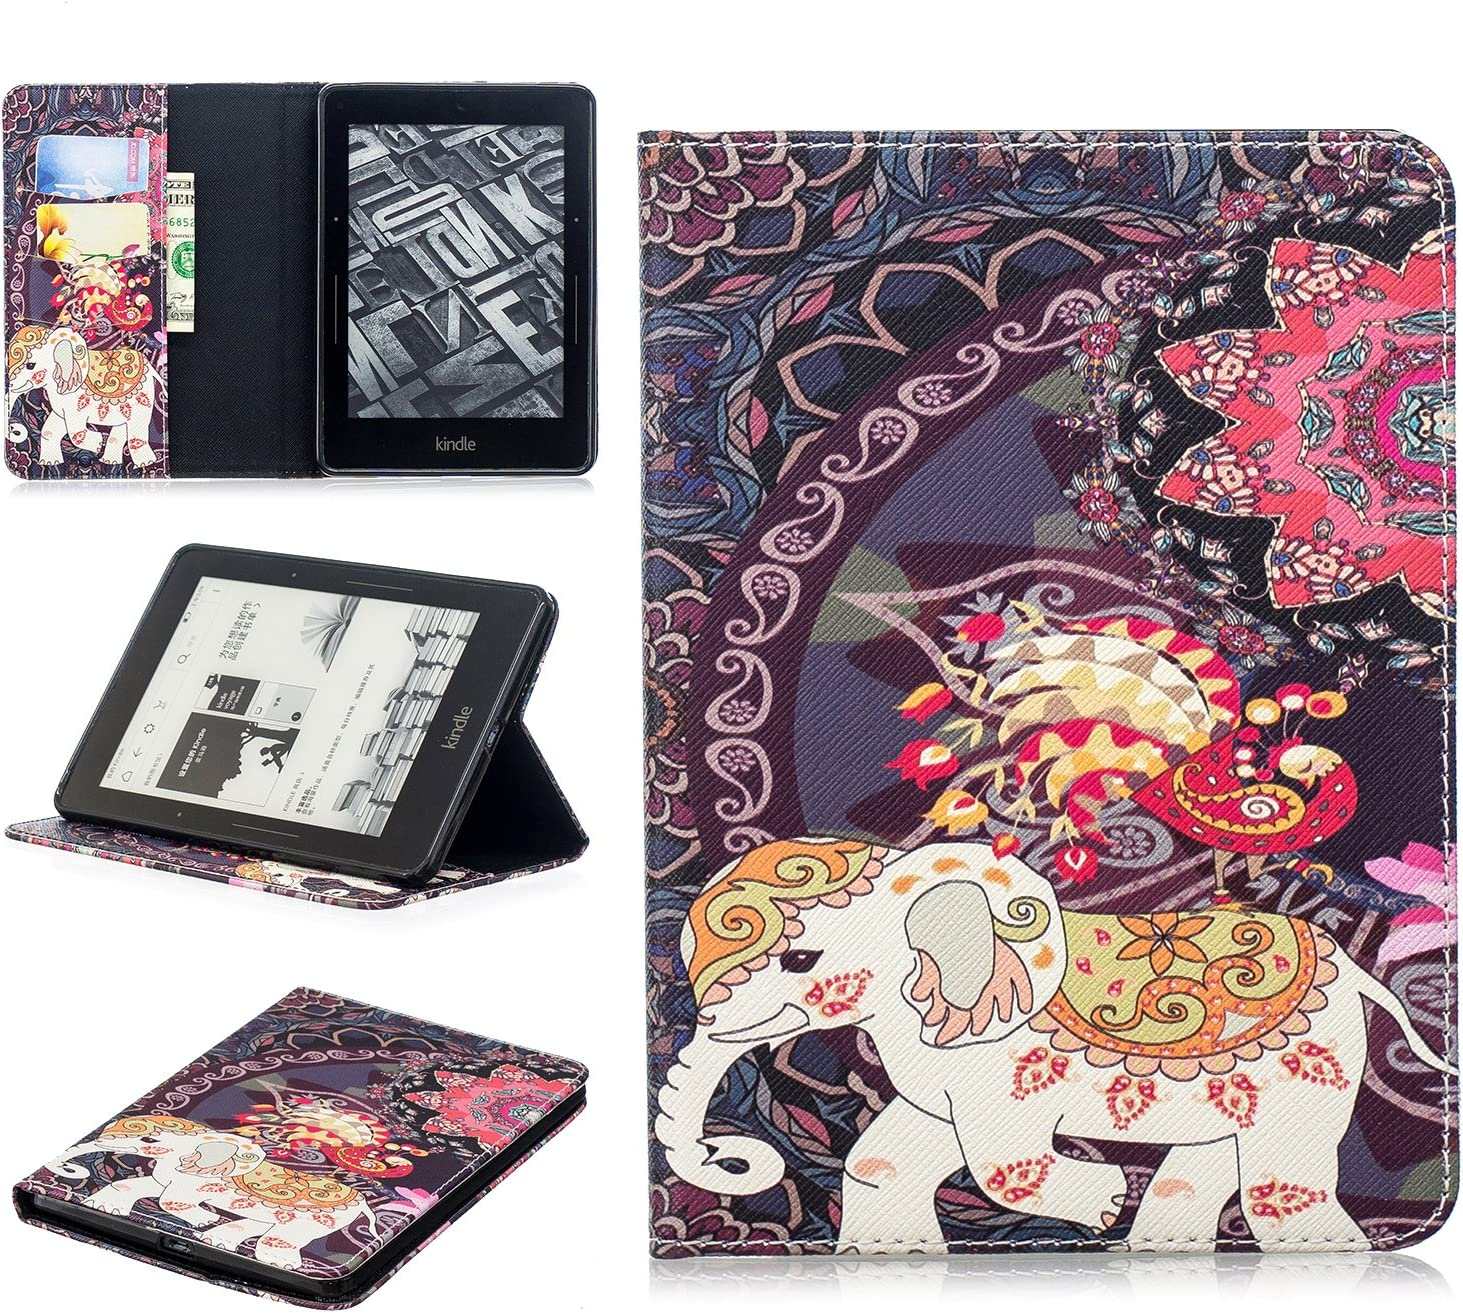 UUcovers Amazon Voyage E-Reader Case (2014), AUTO Wake/Sleep Thinnest Lightweight PU Leather Stand Smart Wallet Case with Cards/Cash Holder, Elephant Featured Thailand Style